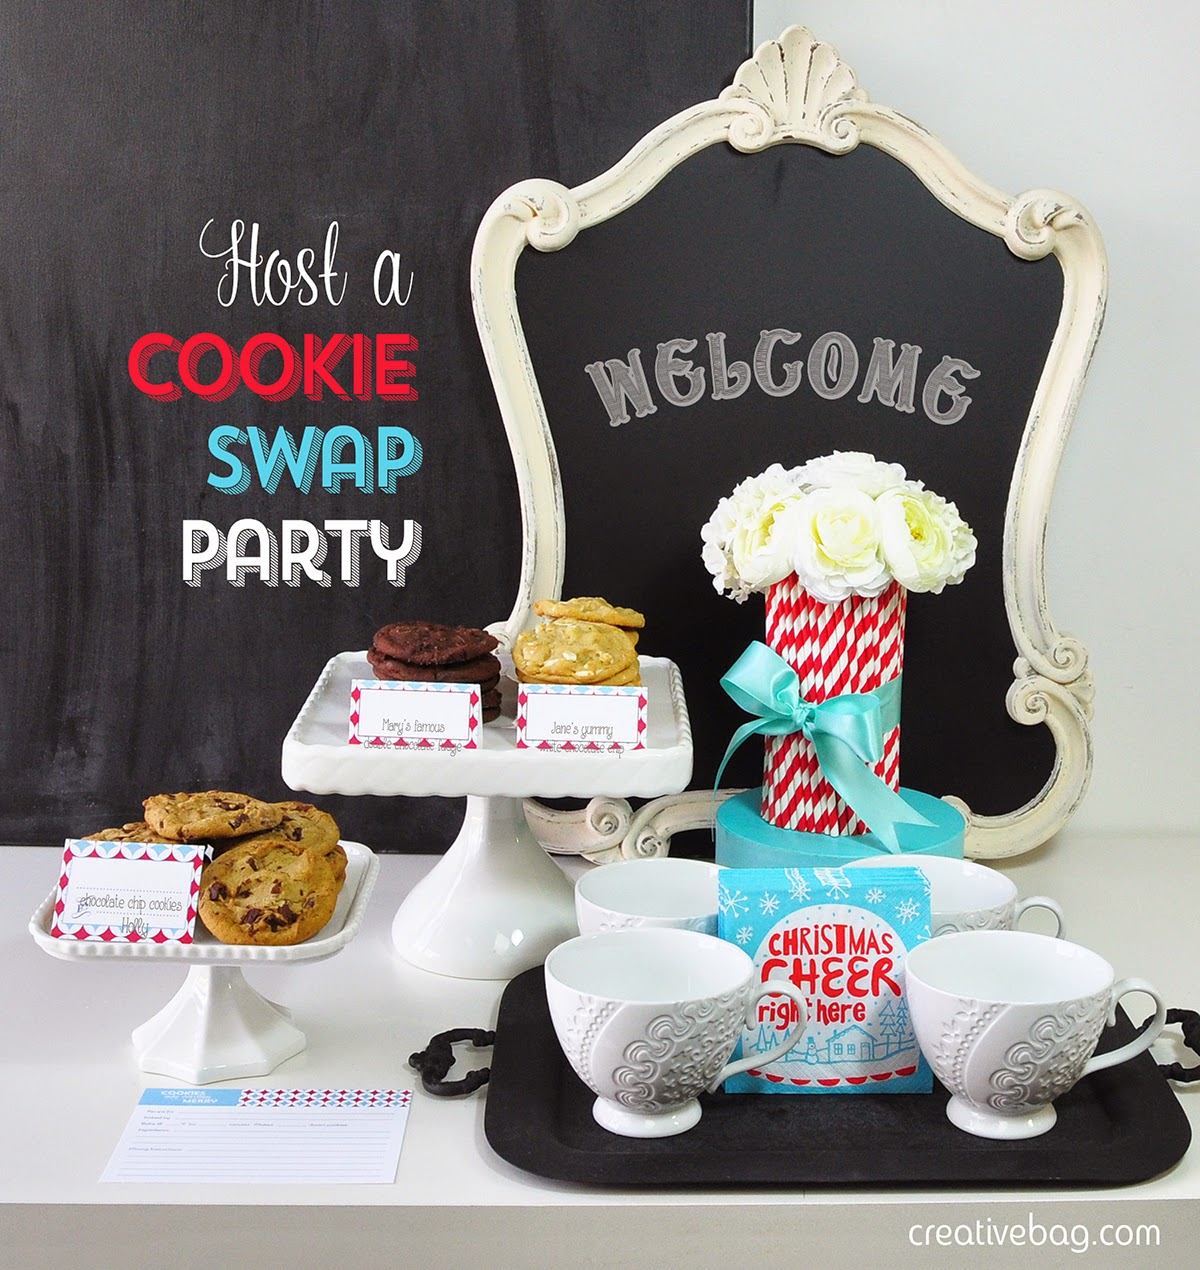 host a cookie swap party and free printables | creativebag.com